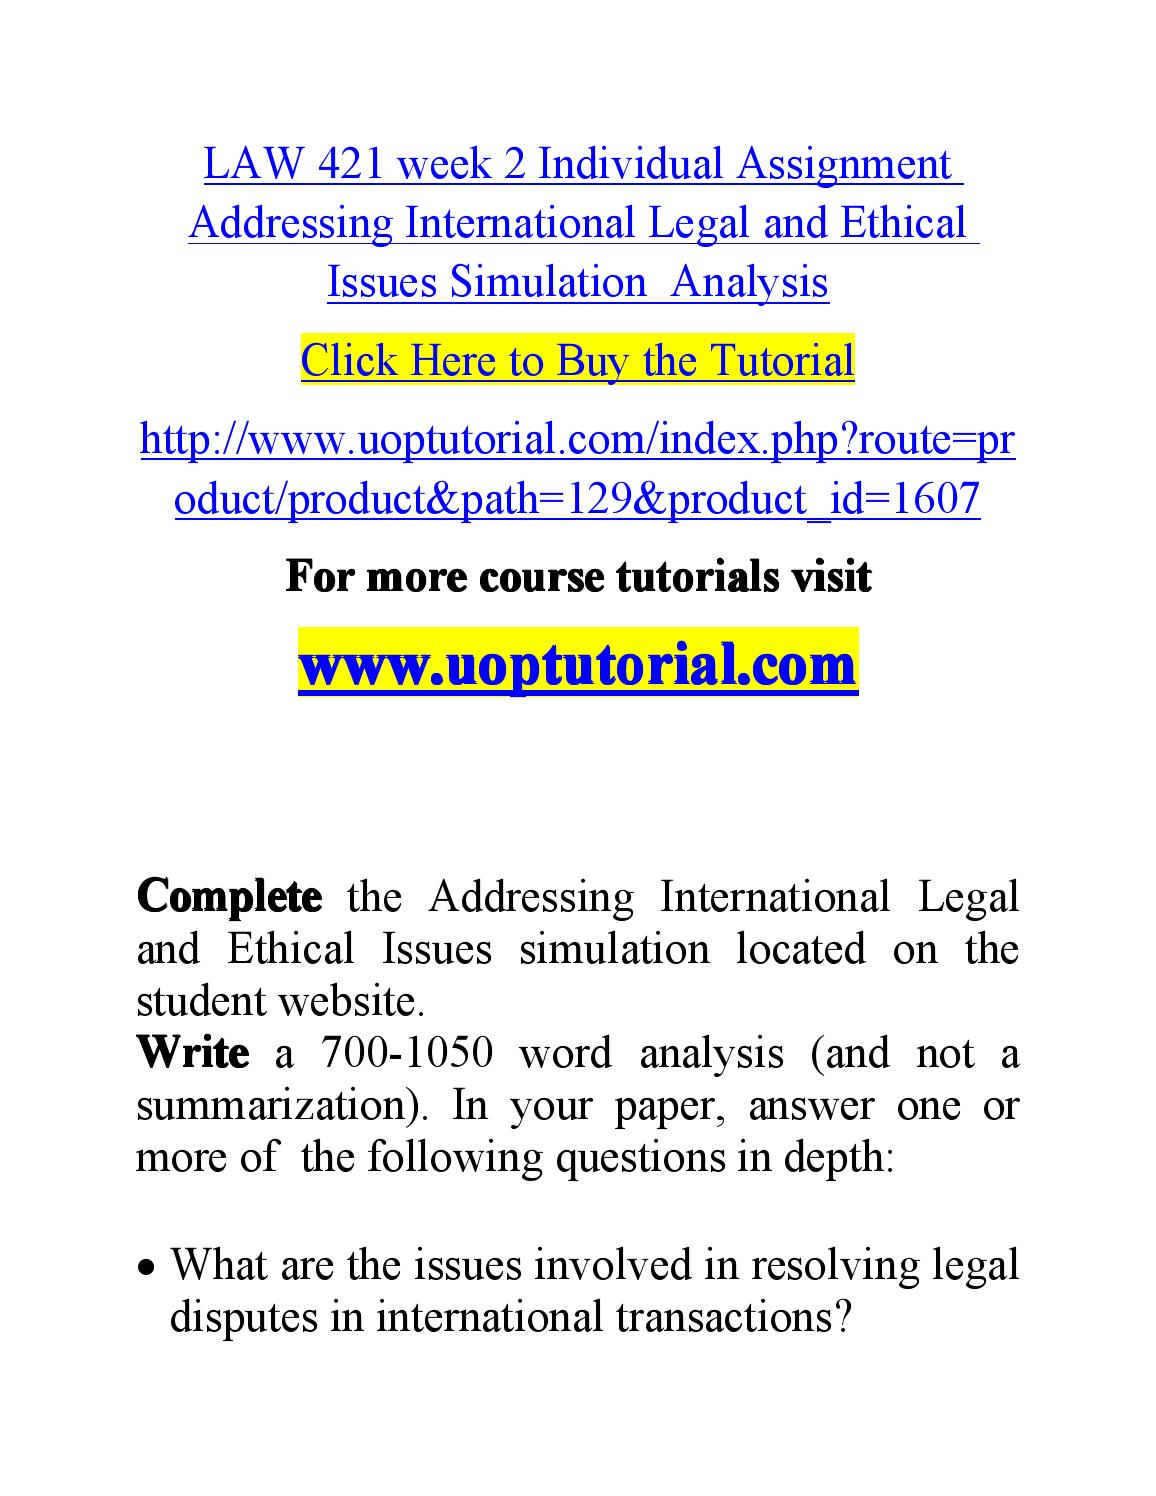 law 421 week 3 individual assignment Law 421 week 5 individual assignment article review law 421 week 5 individual assignment article review resource: article review format guide located on the student.